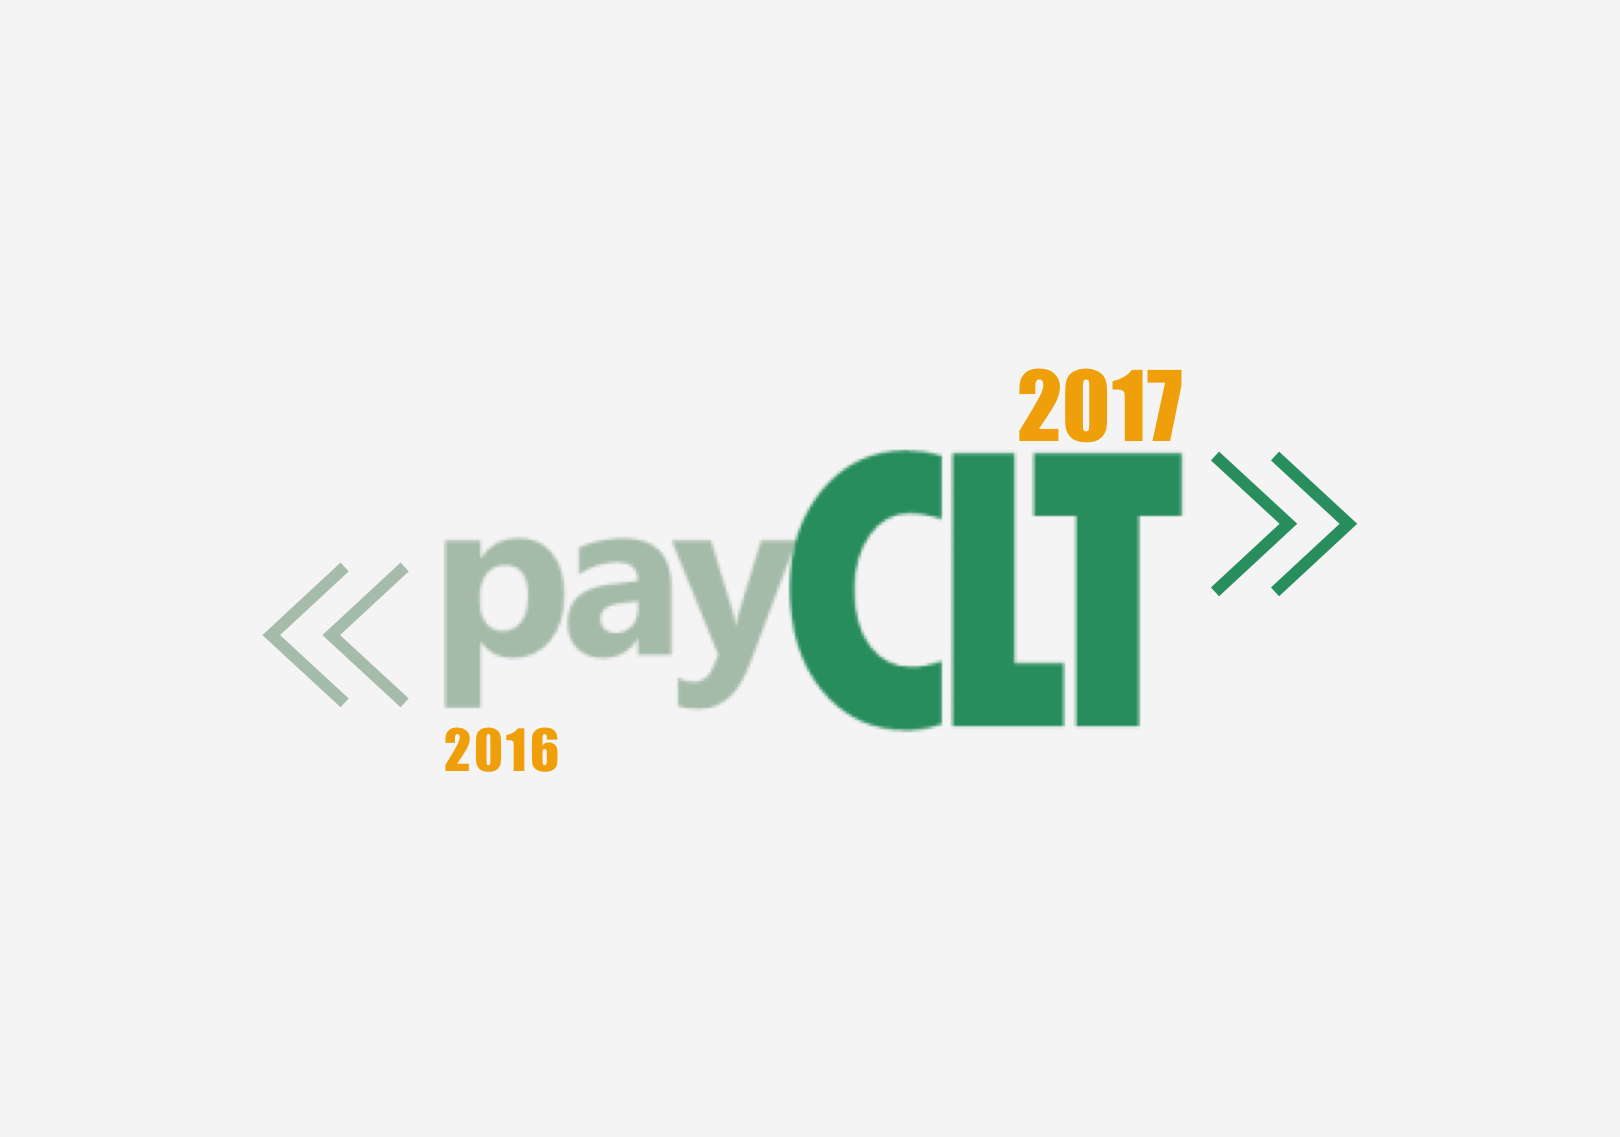 payCLT to Discuss Payments in 2016 & 2017